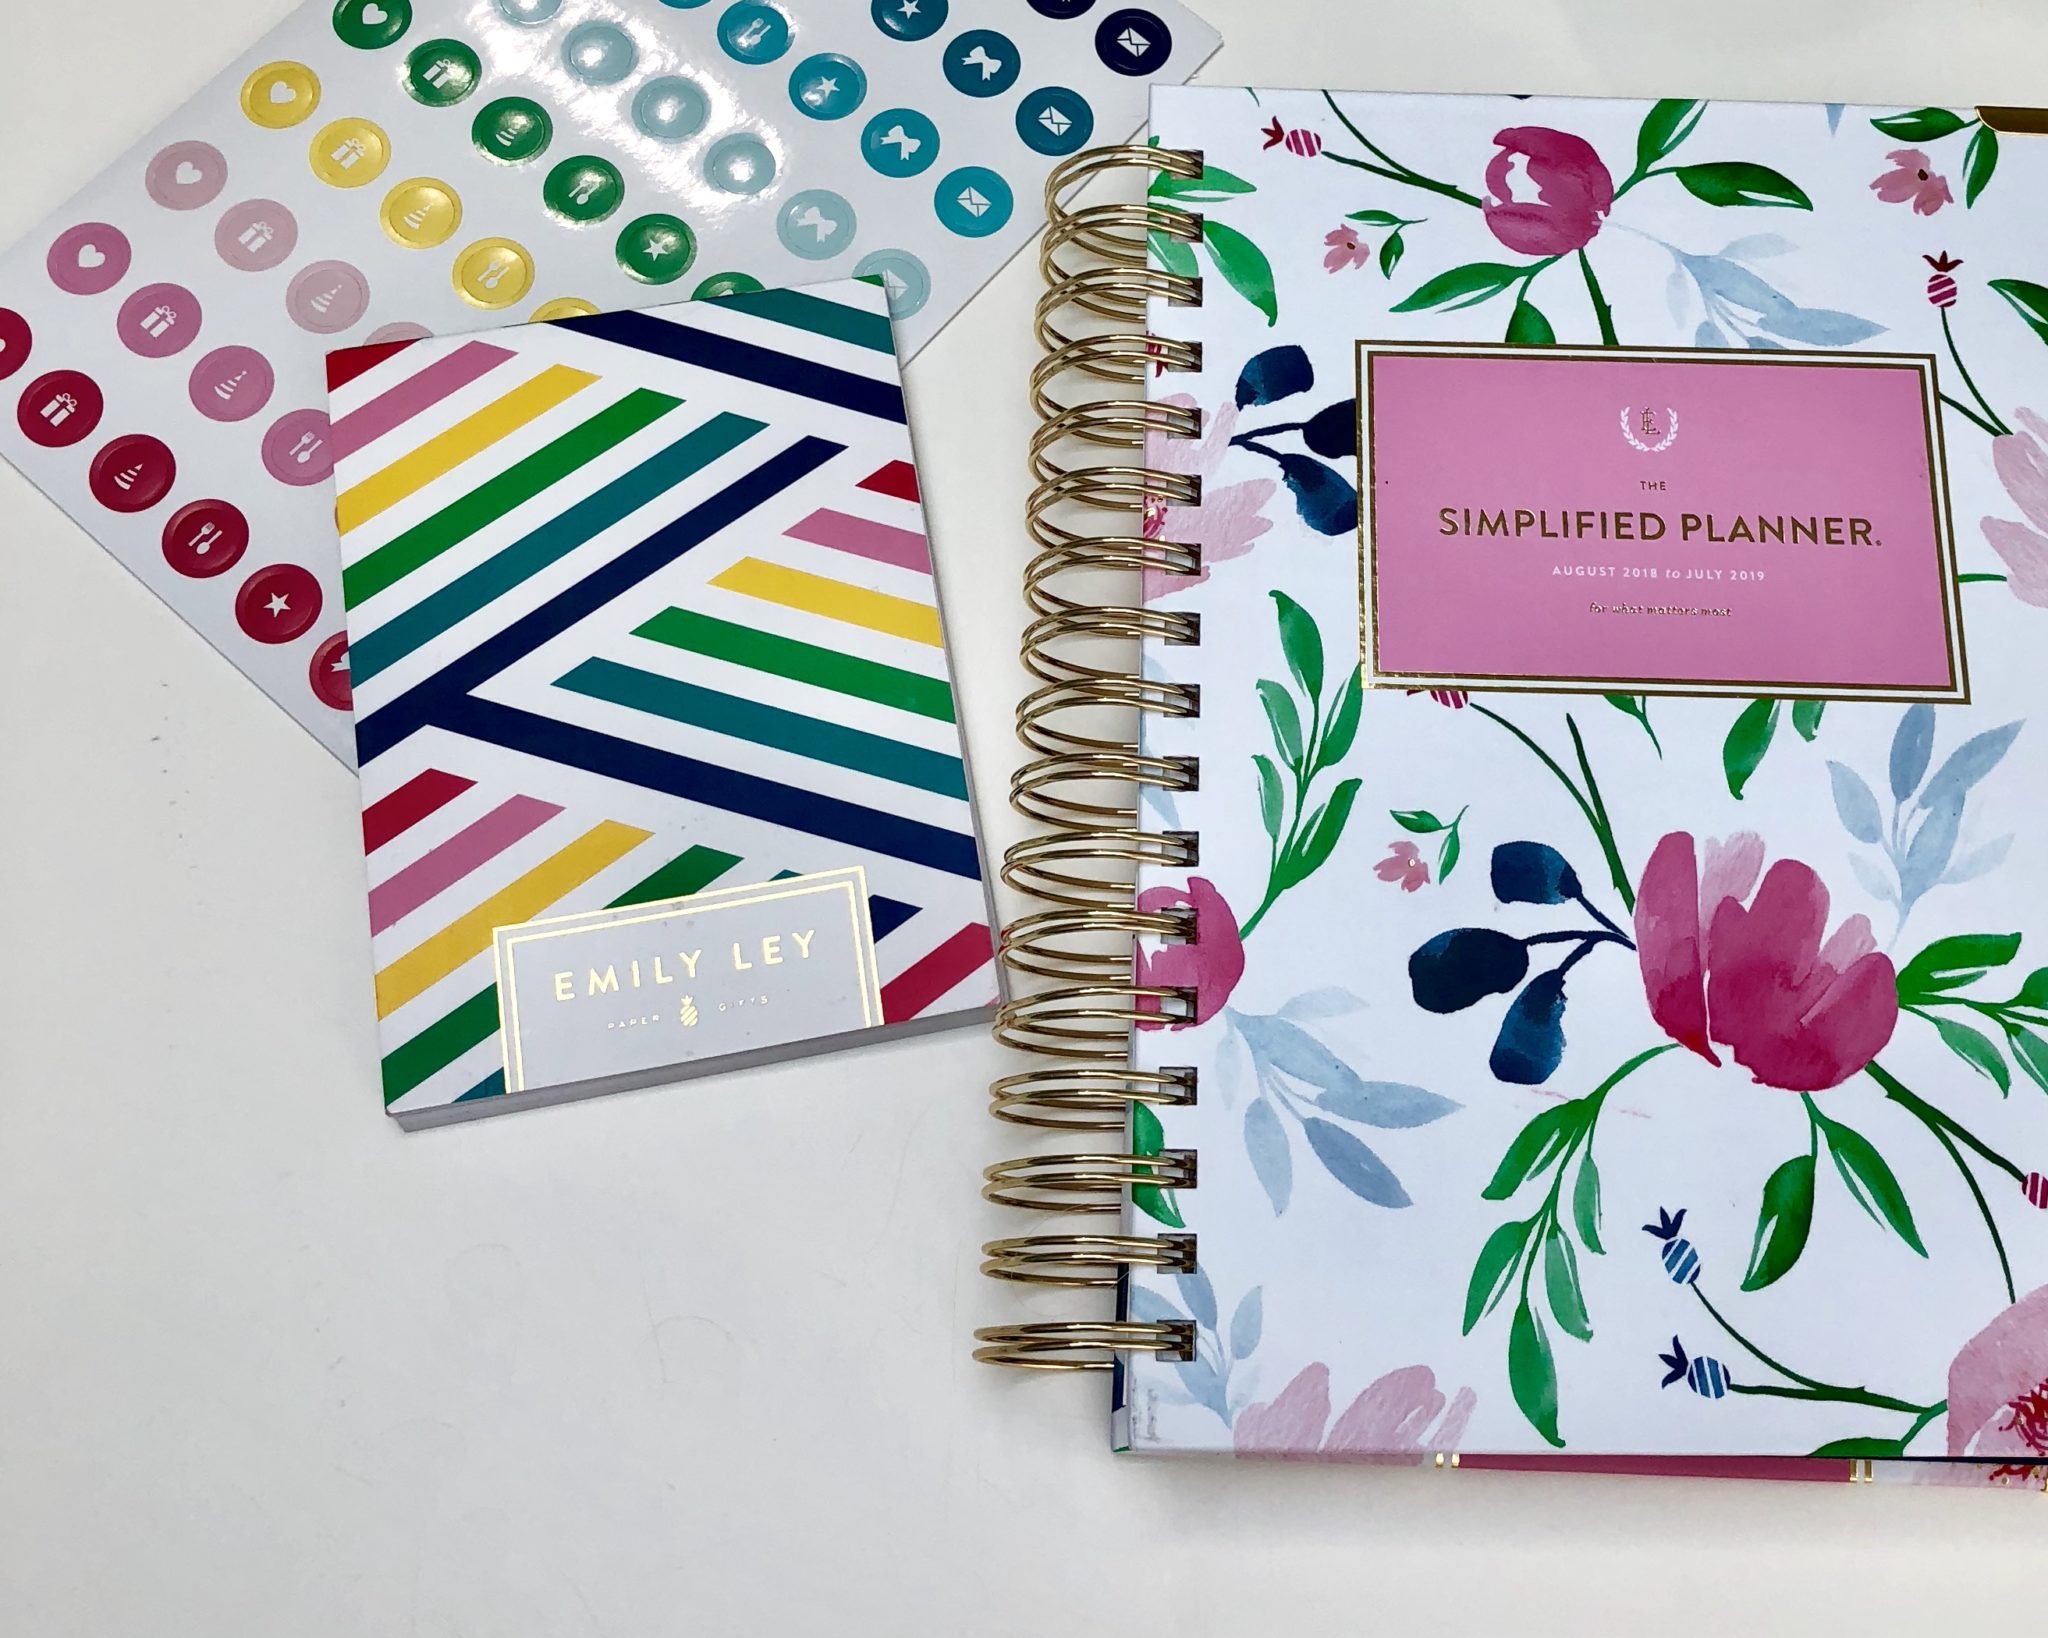 photo regarding Simplified Planner identify Method with Me: Simplified Planner - Past the Bookends